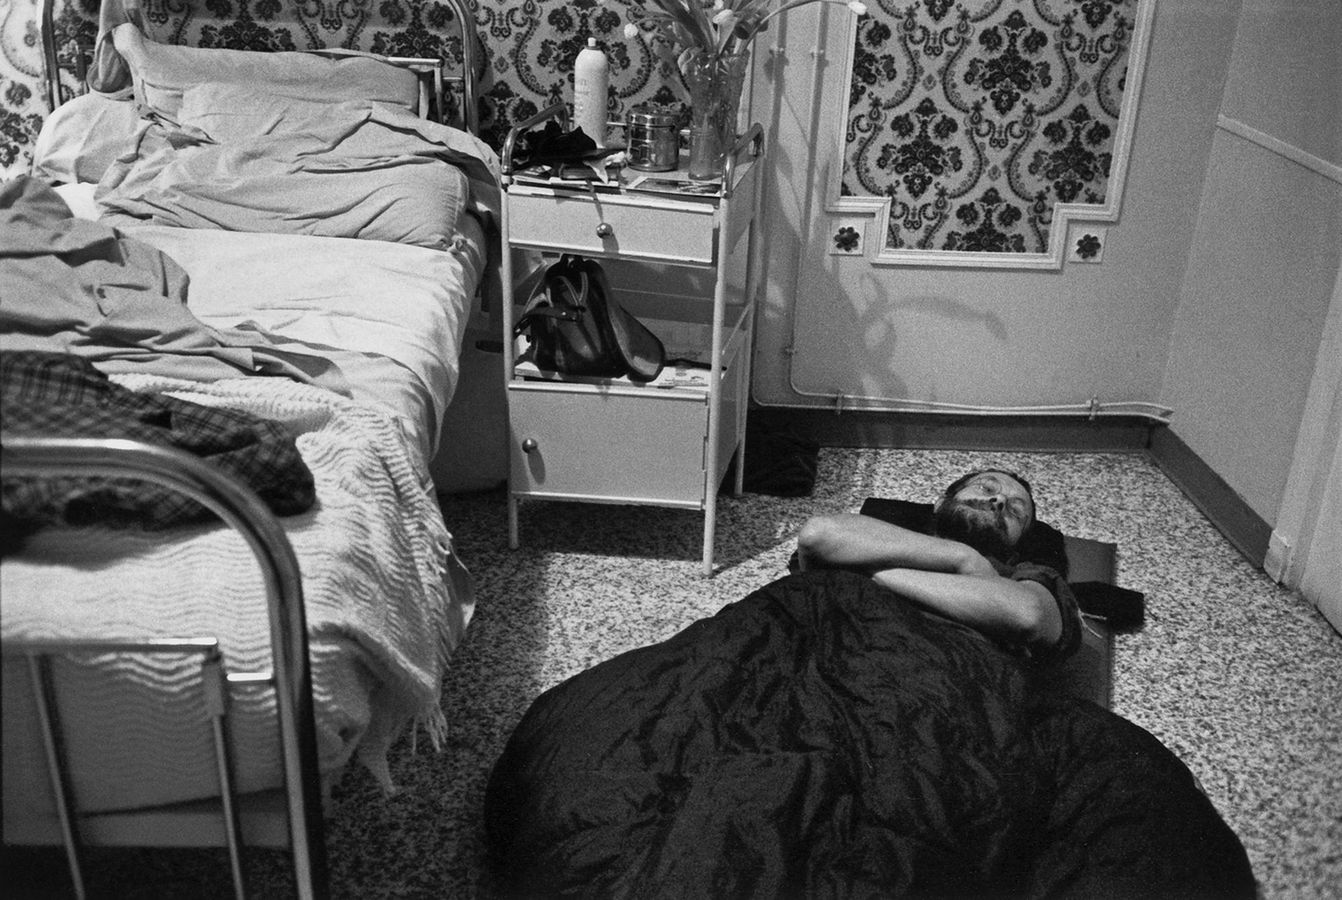 World-renowned Wanderer Josef Koudelka sleeping on floor